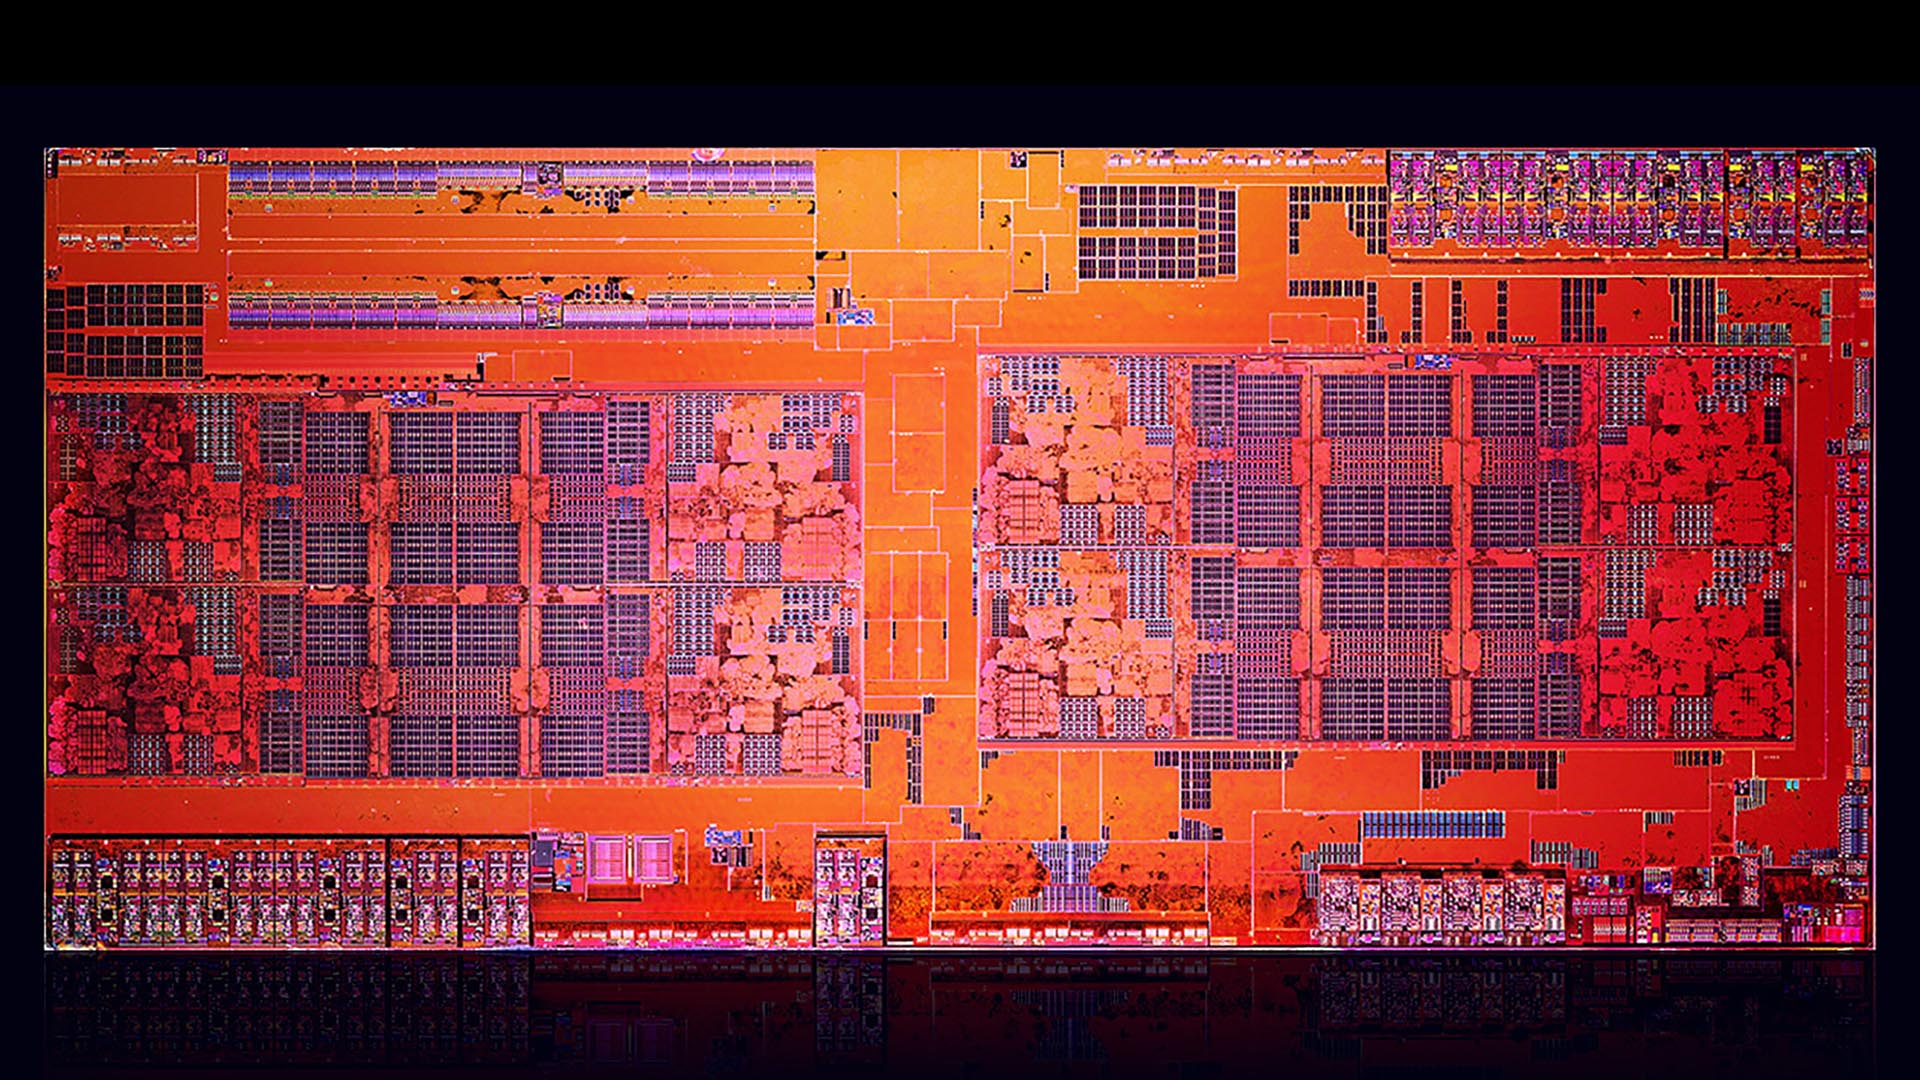 amd�s zen 3 cpus will offer efficiency but only �modest